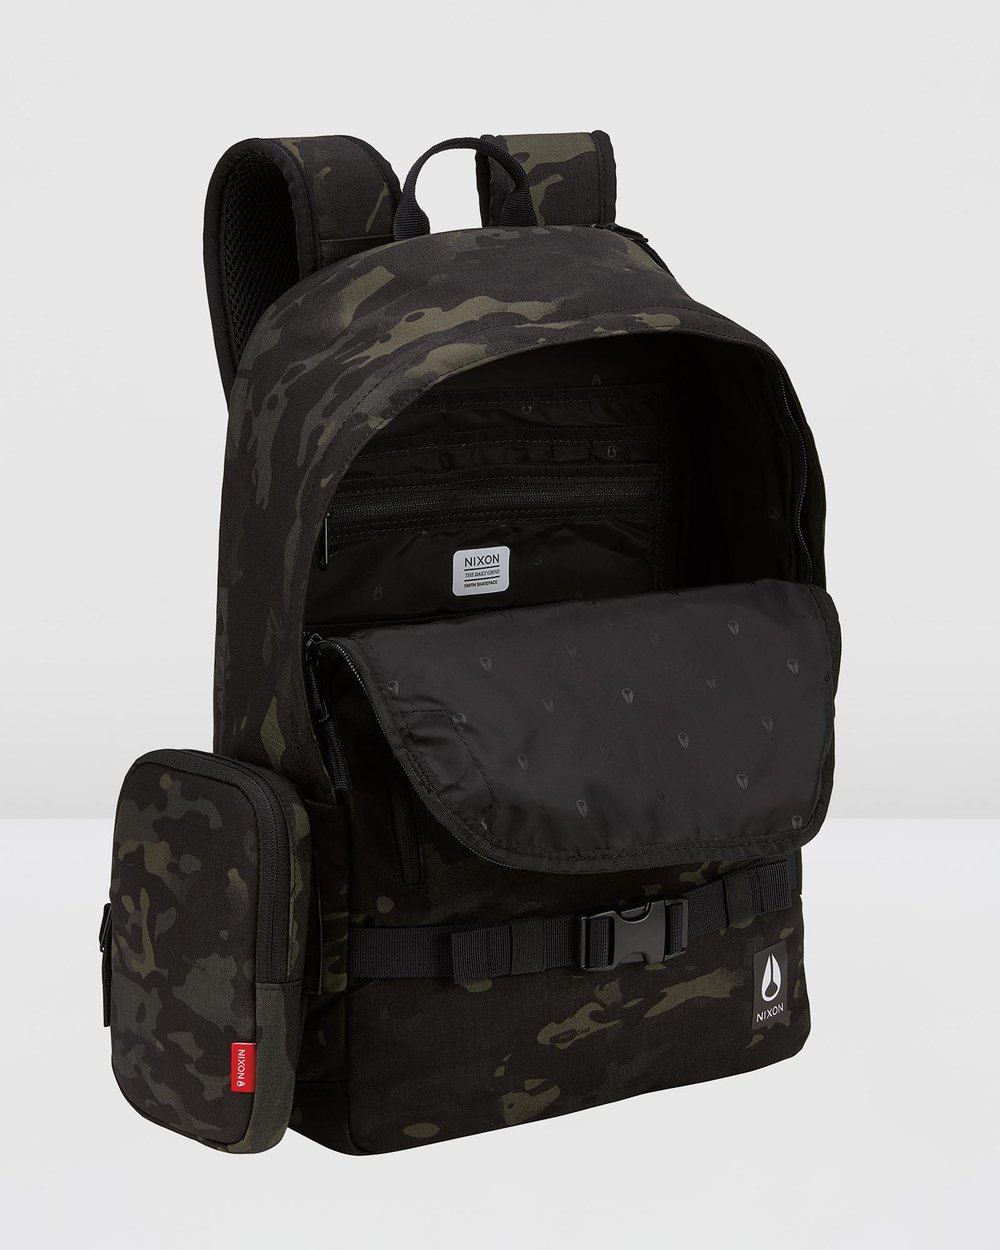 64834032e1646 Smith Backpack by Nixon Online